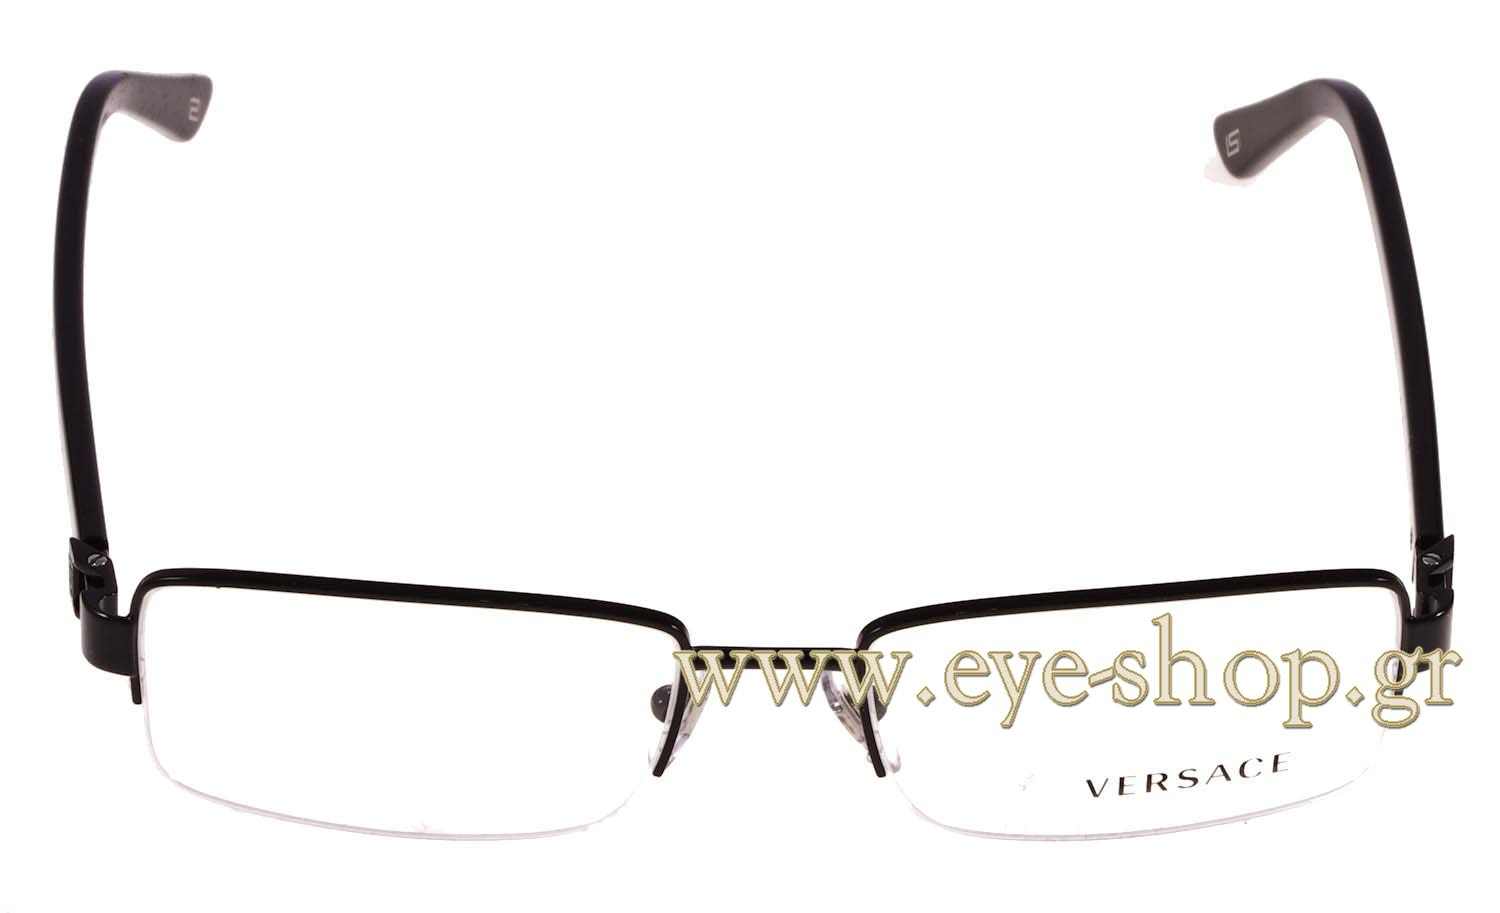 Eyewear Versace 1183 1009 Men Eye-Shop